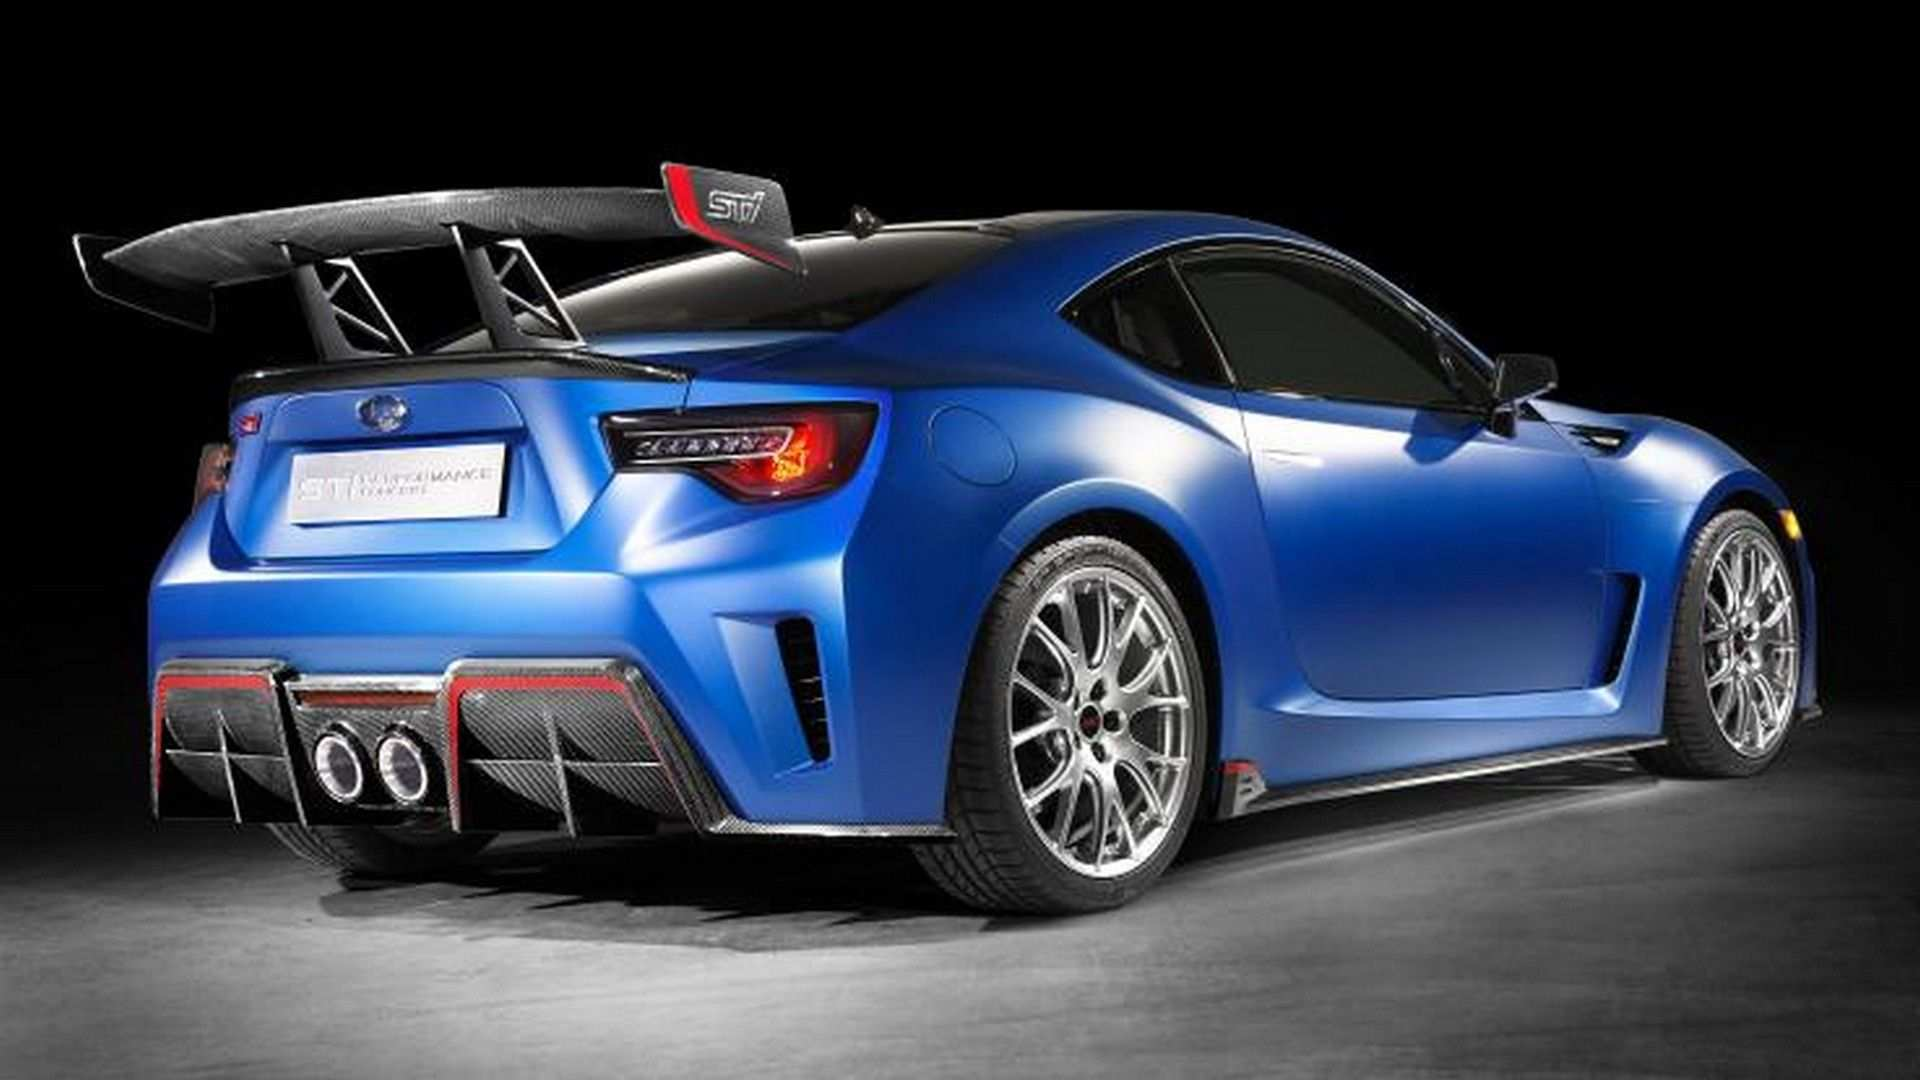 61 Great Toyota Brz 2020 Redesign and Concept with Toyota Brz 2020